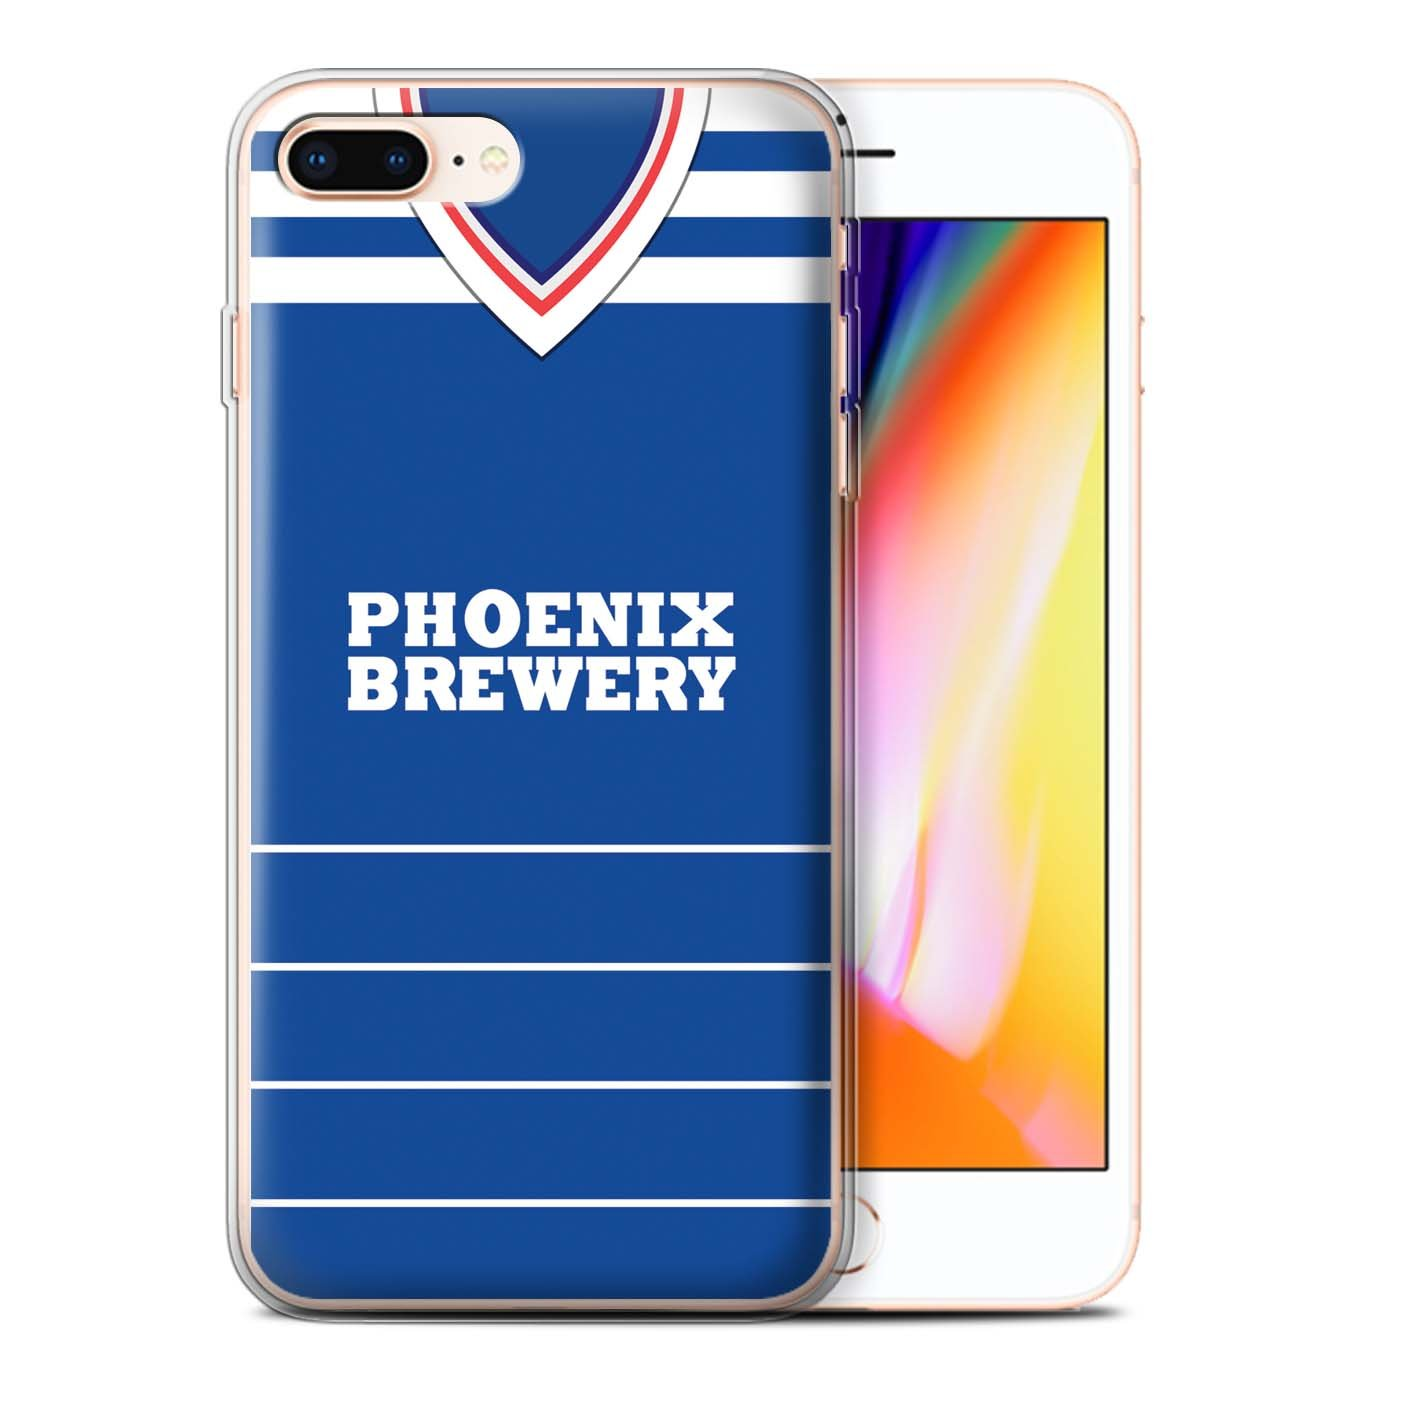 Retro Clasico Phone Case/Cover/Skin/ip-gc/retro camiseta de fútbol/Kit división 1 Colección Brighton 1985 Apple iPhone 8 Plus: Amazon.es: Informática